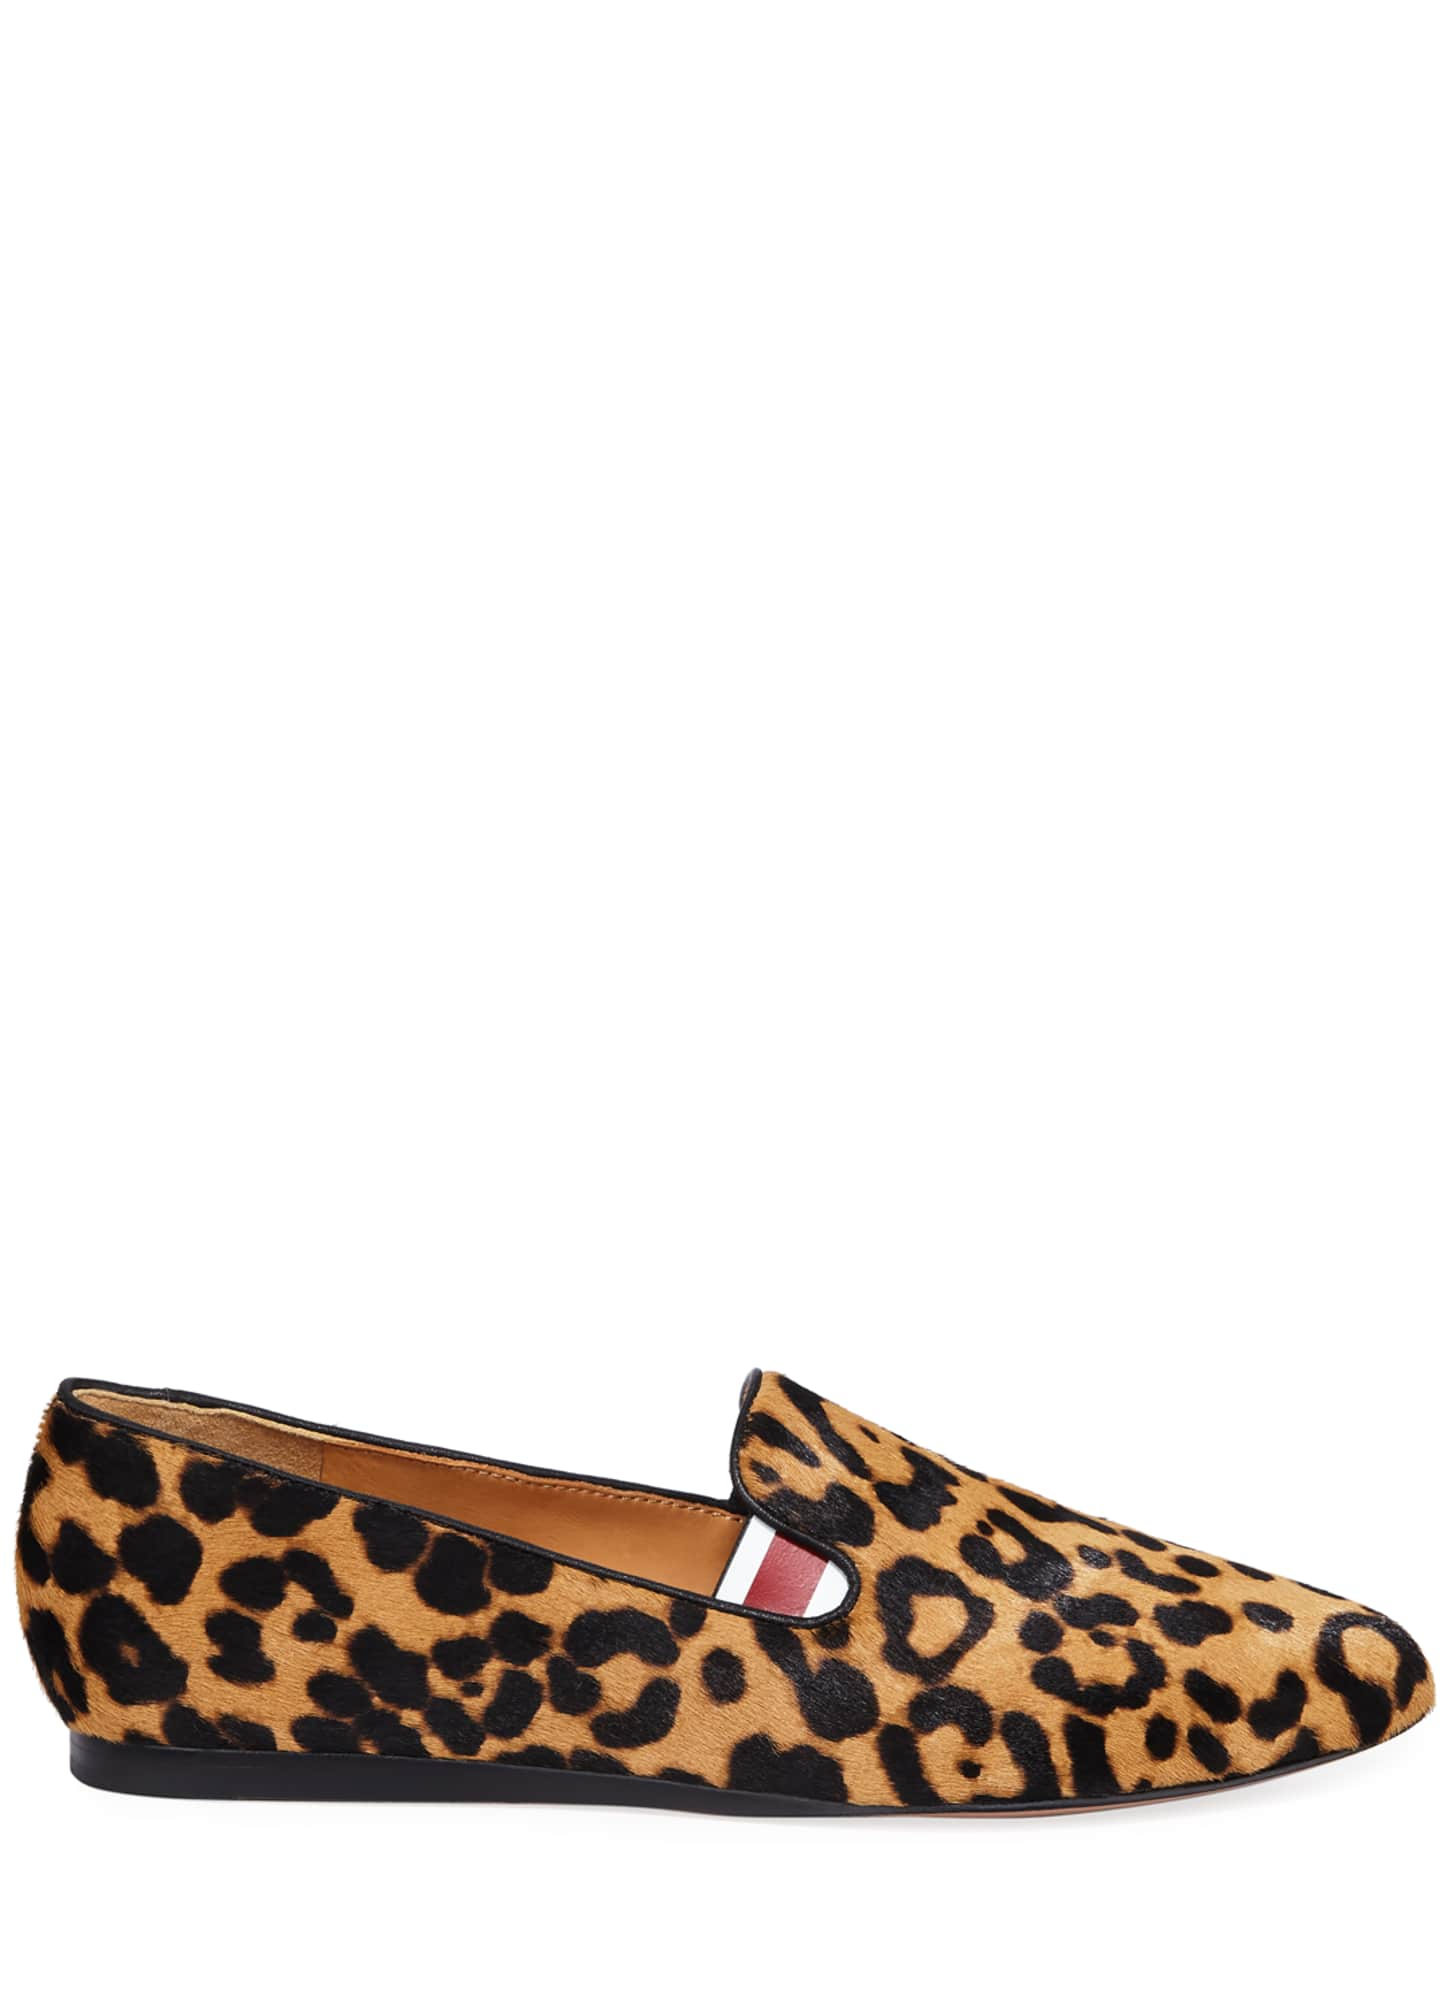 Image 2 of 3: Griffin Leopard Calf Hair Loafers